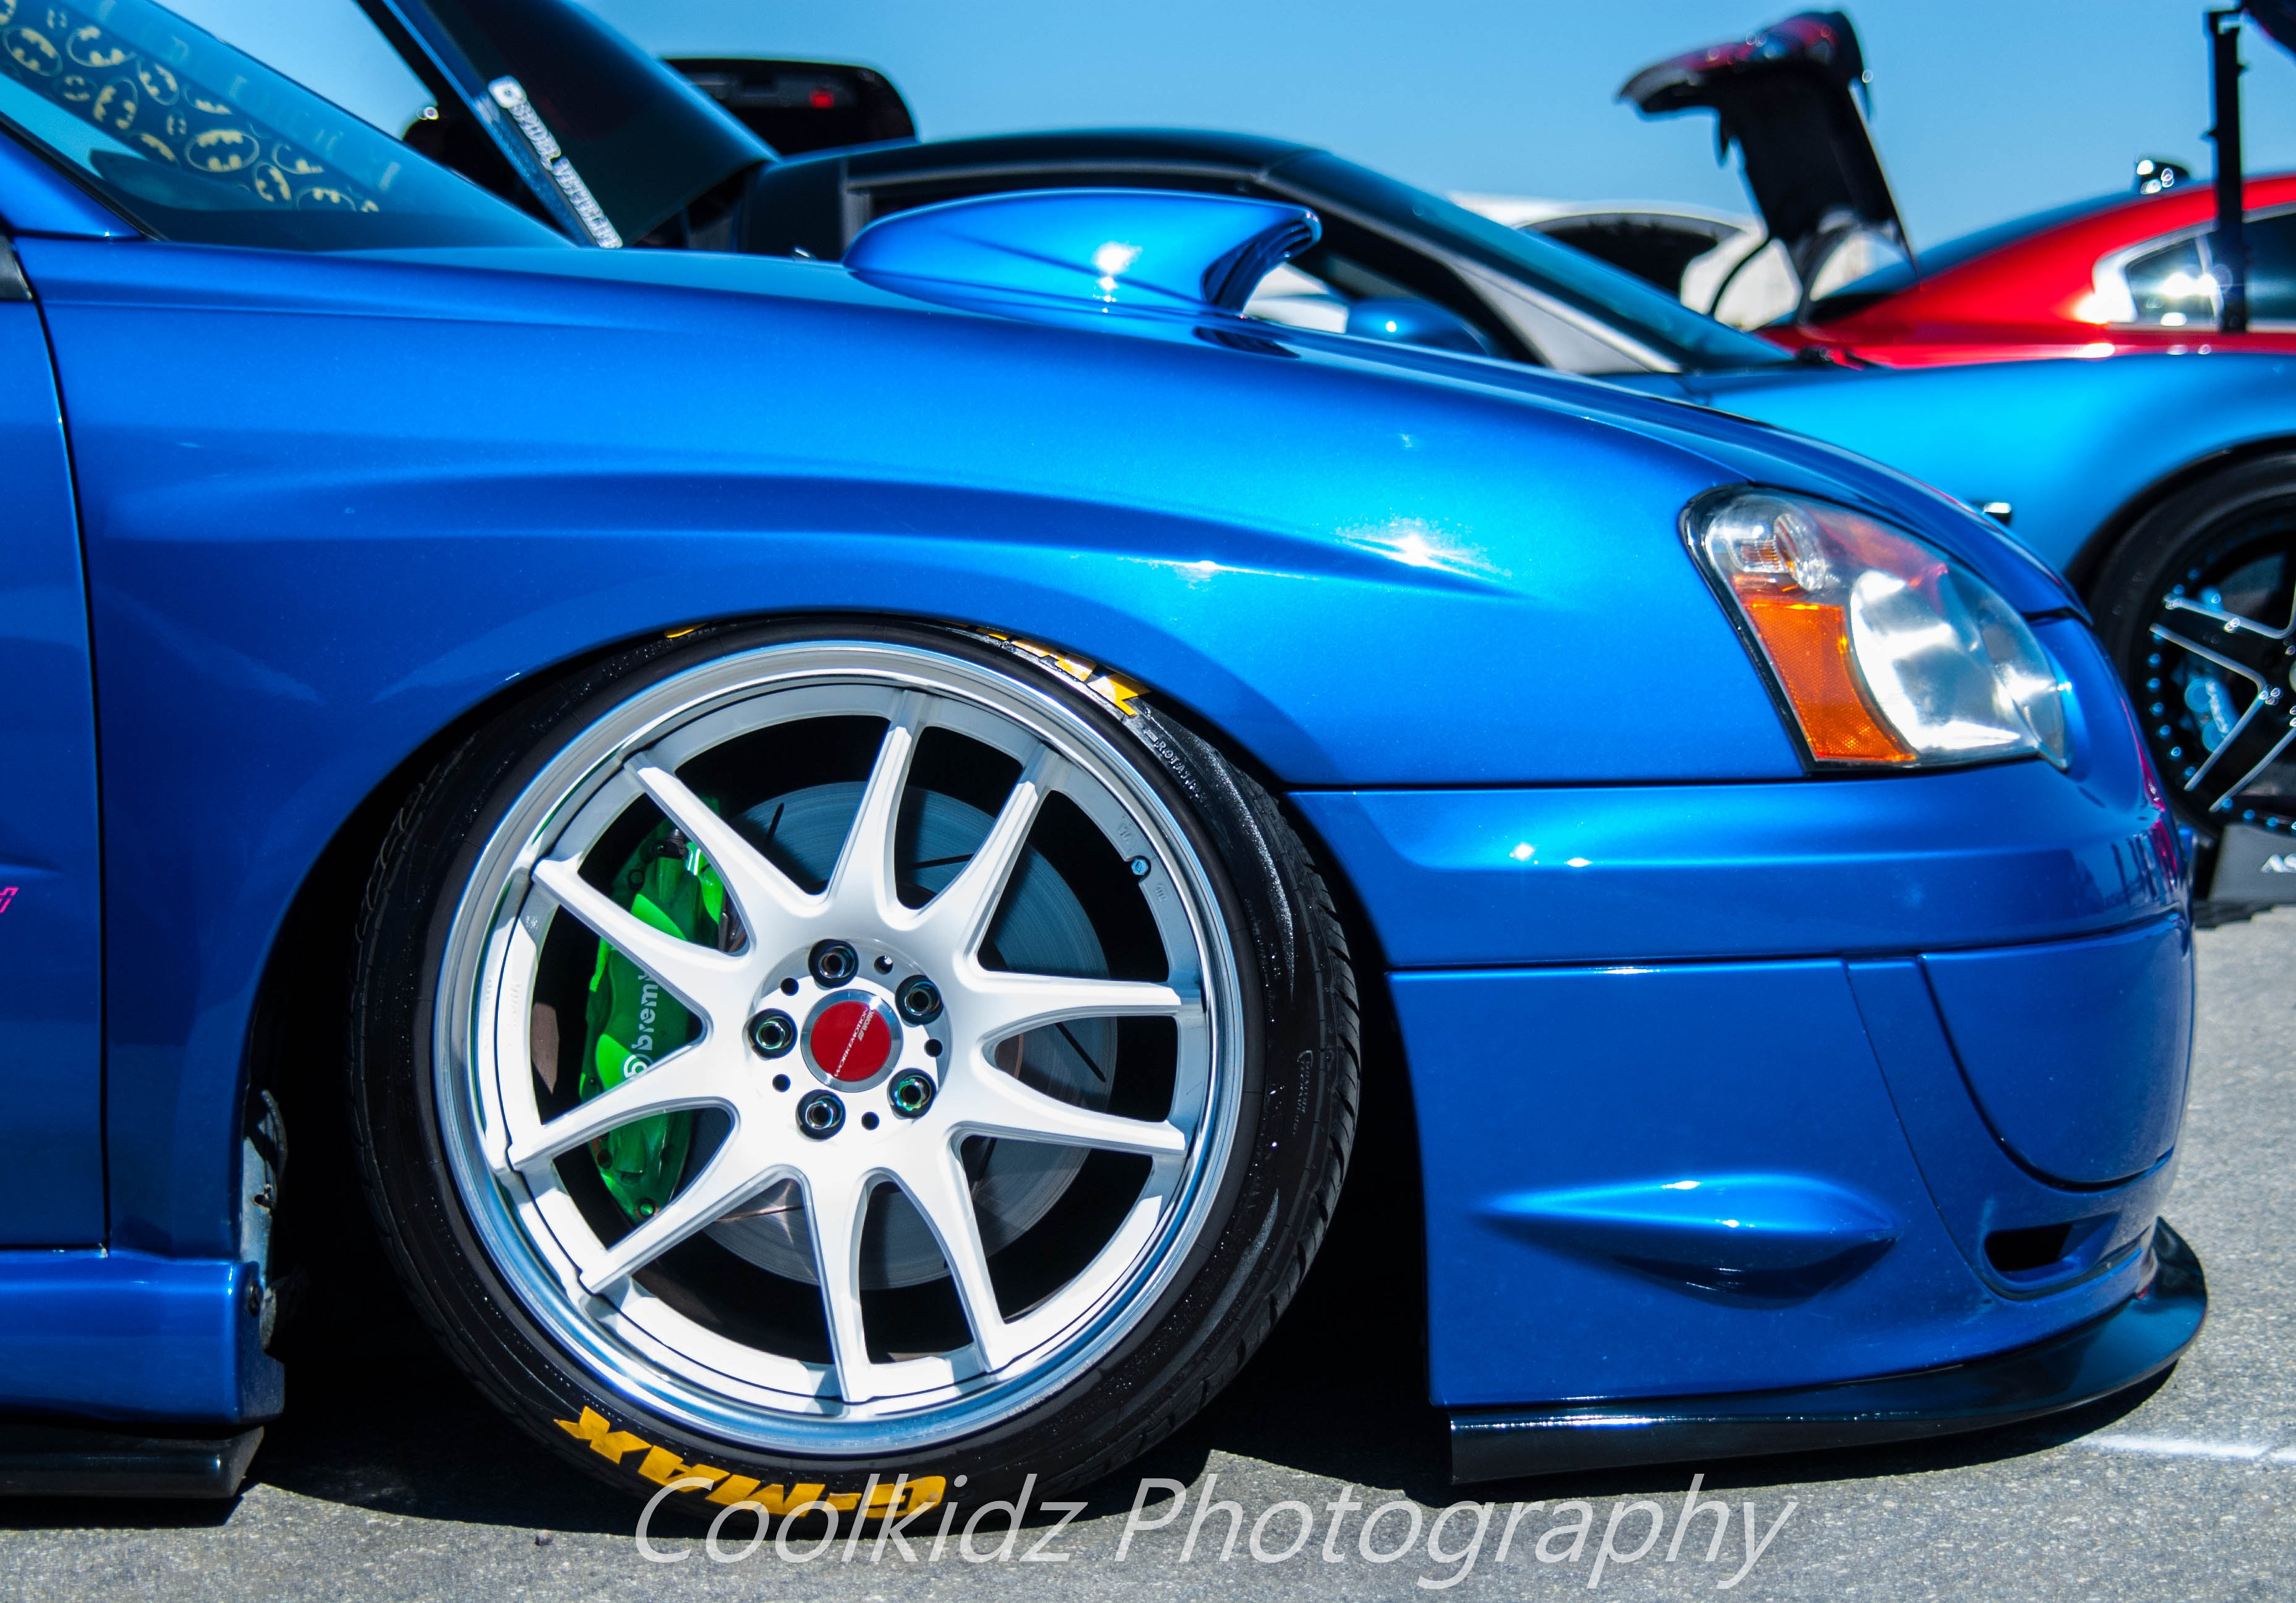 Anthony Brewer 2004 Subaru WRX STI TBGLIVE1